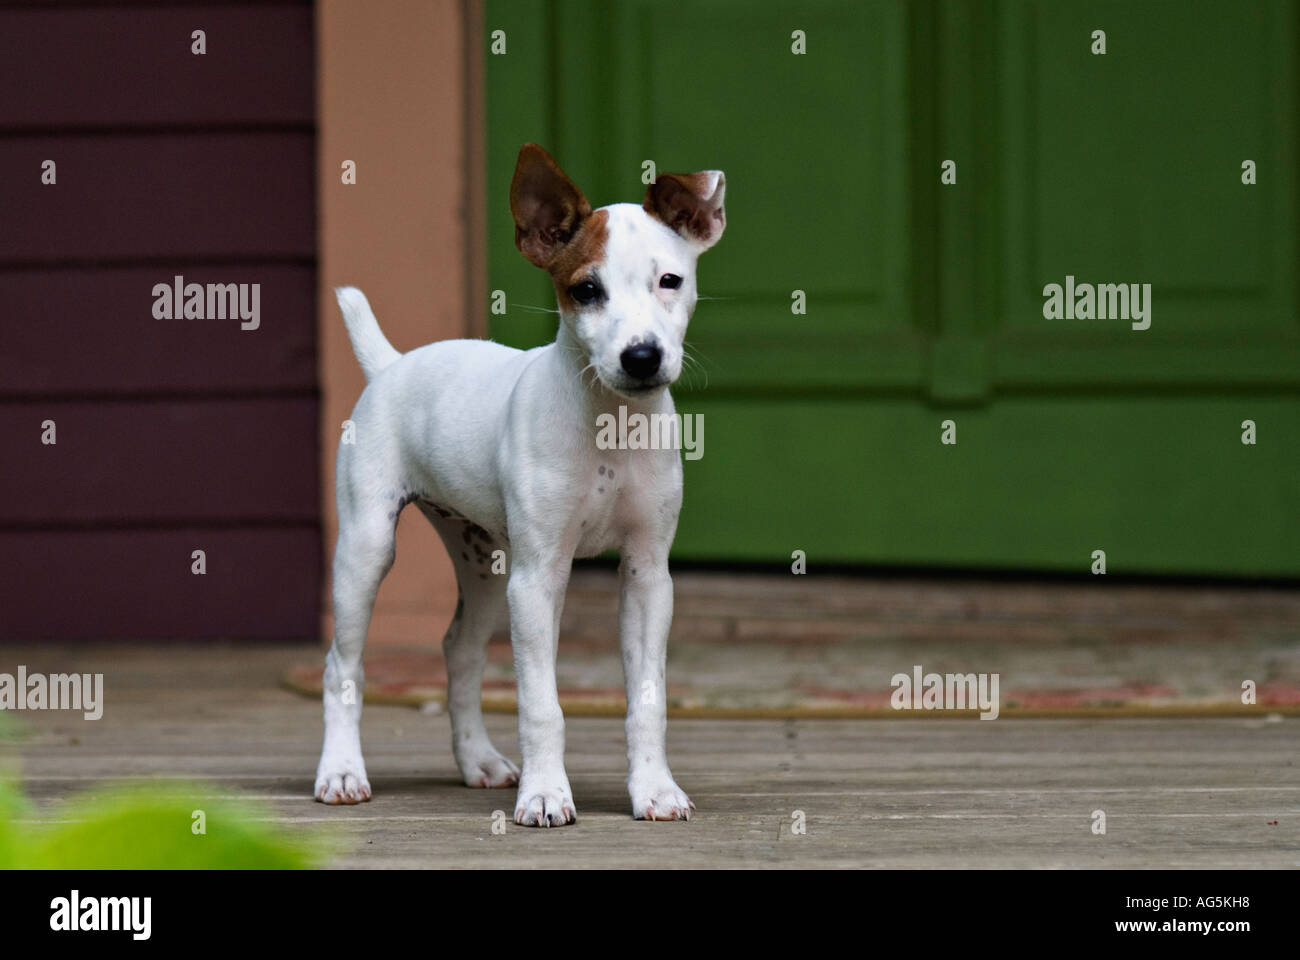 parson jack russell terrier puppy standing on porch of old farm house stock photo 8058711 alamy. Black Bedroom Furniture Sets. Home Design Ideas